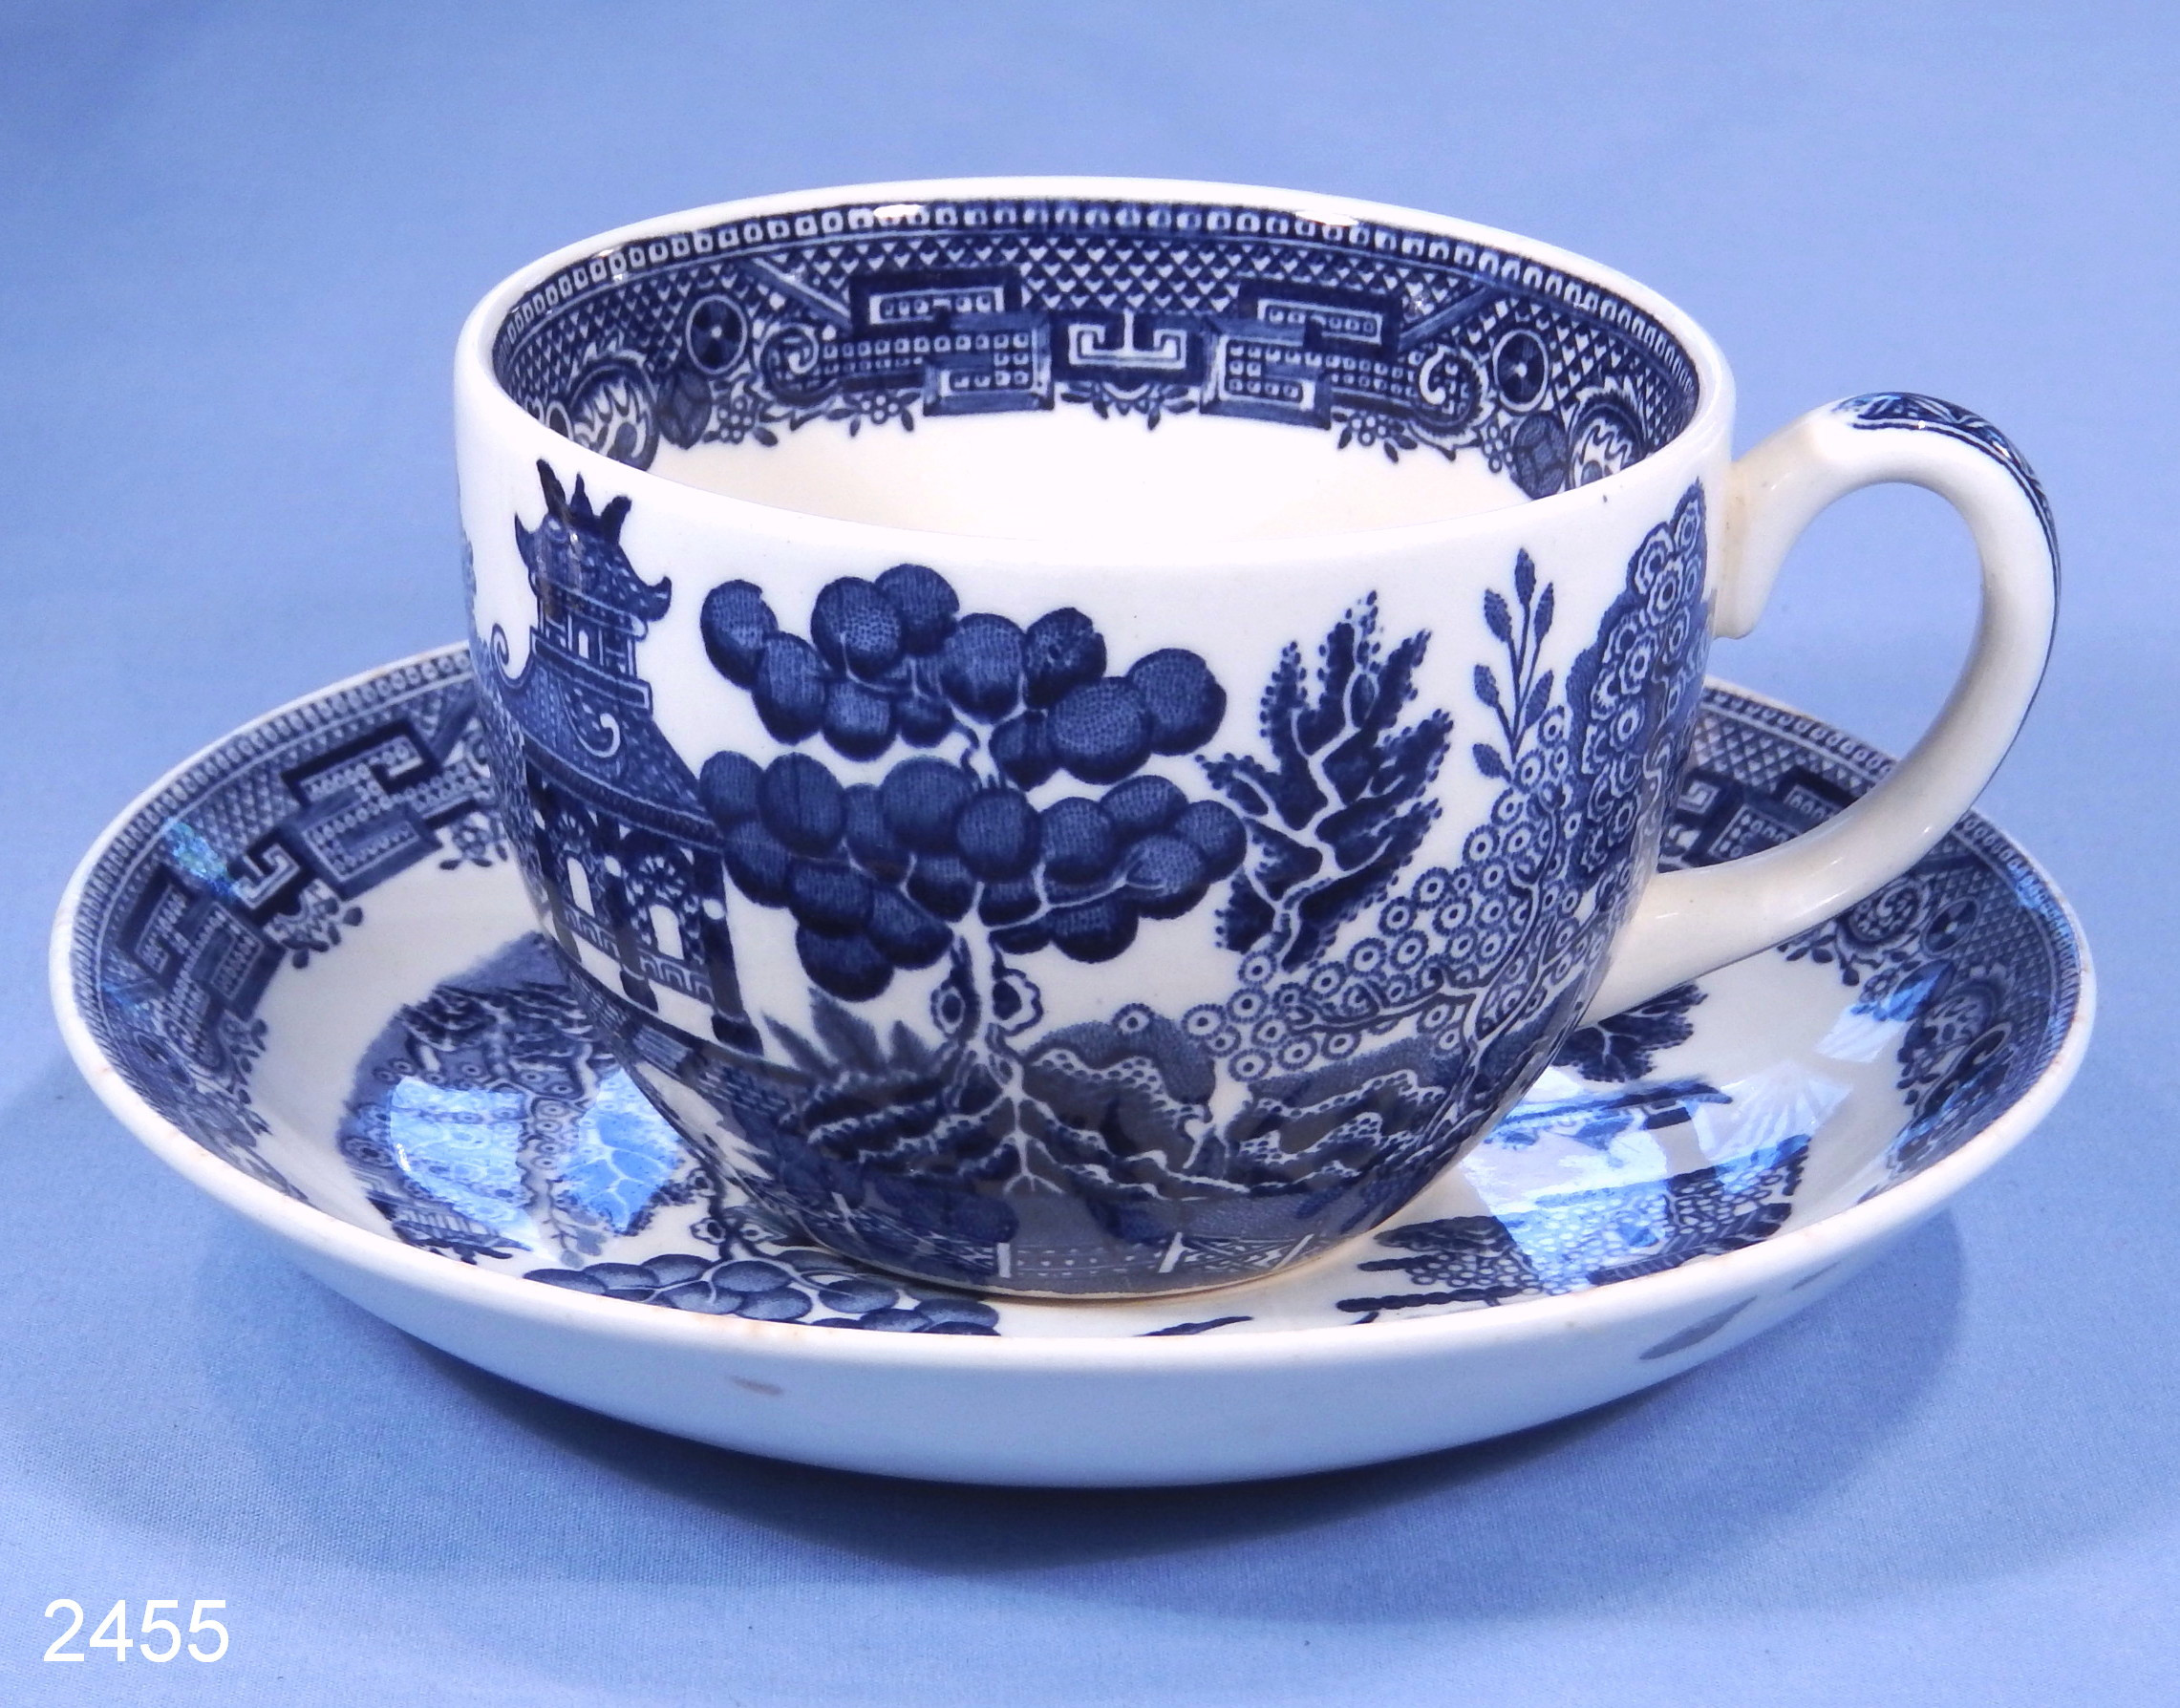 belleek vase patterns of wedgwood willow pattern vintage china tea cup and saucer sold regarding wedgwood willow pattern vintage china tea cup and saucer